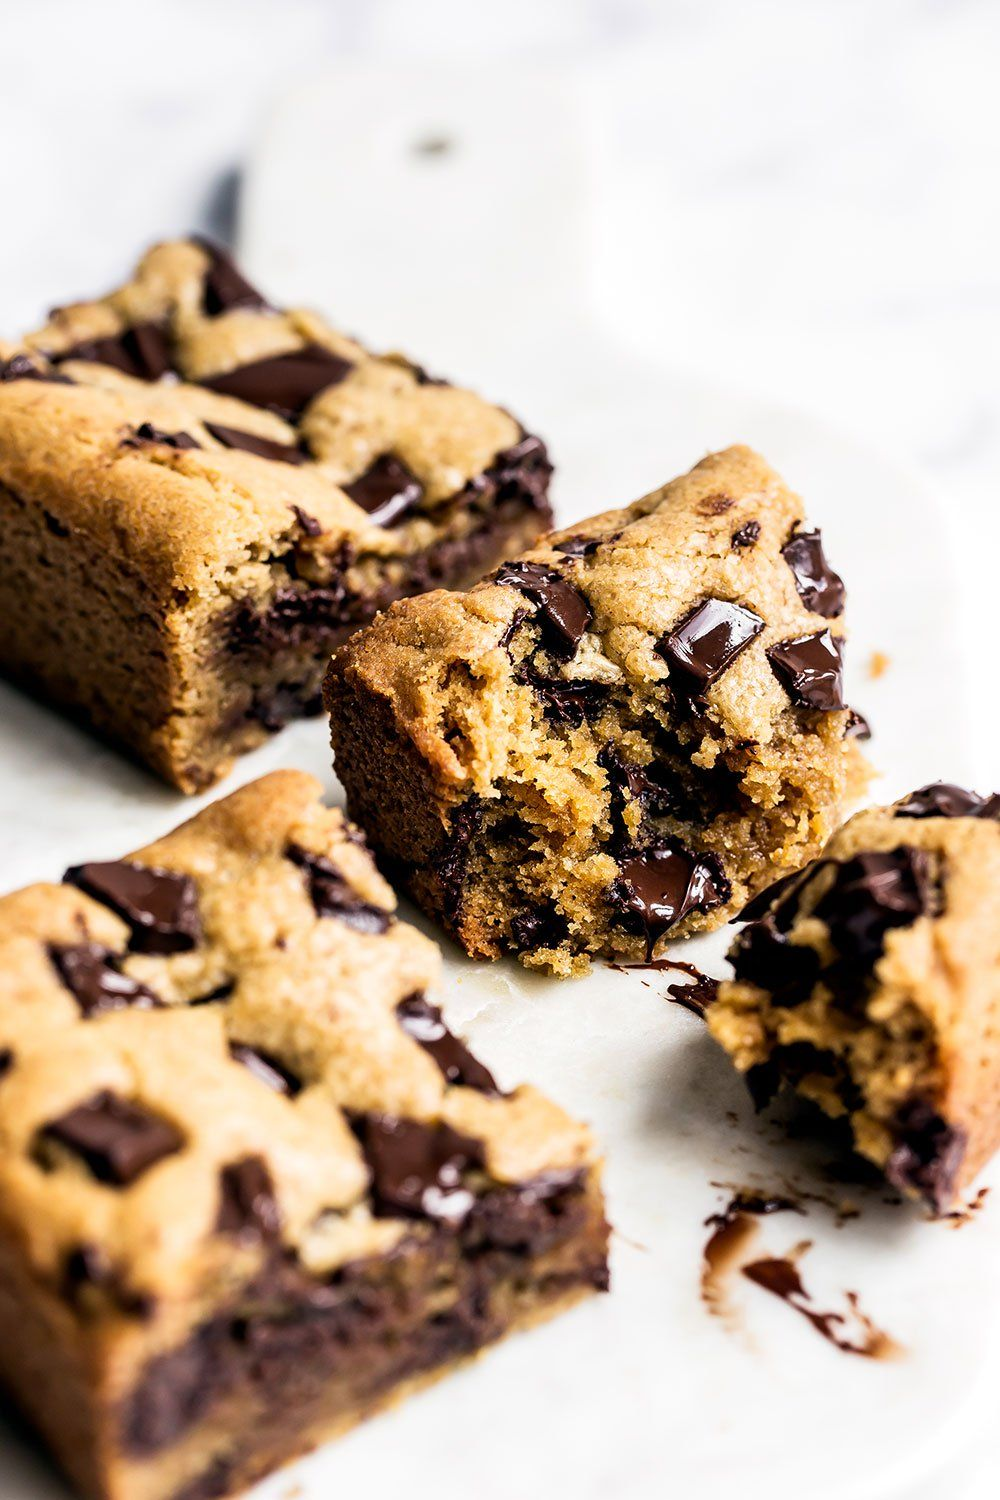 Super Thick And Chewy Peanut Butter Chocolate Chunk Cookie Bars Cookie Bar Recipes Peanut Butter Recipes Chocolate Peanut Butter